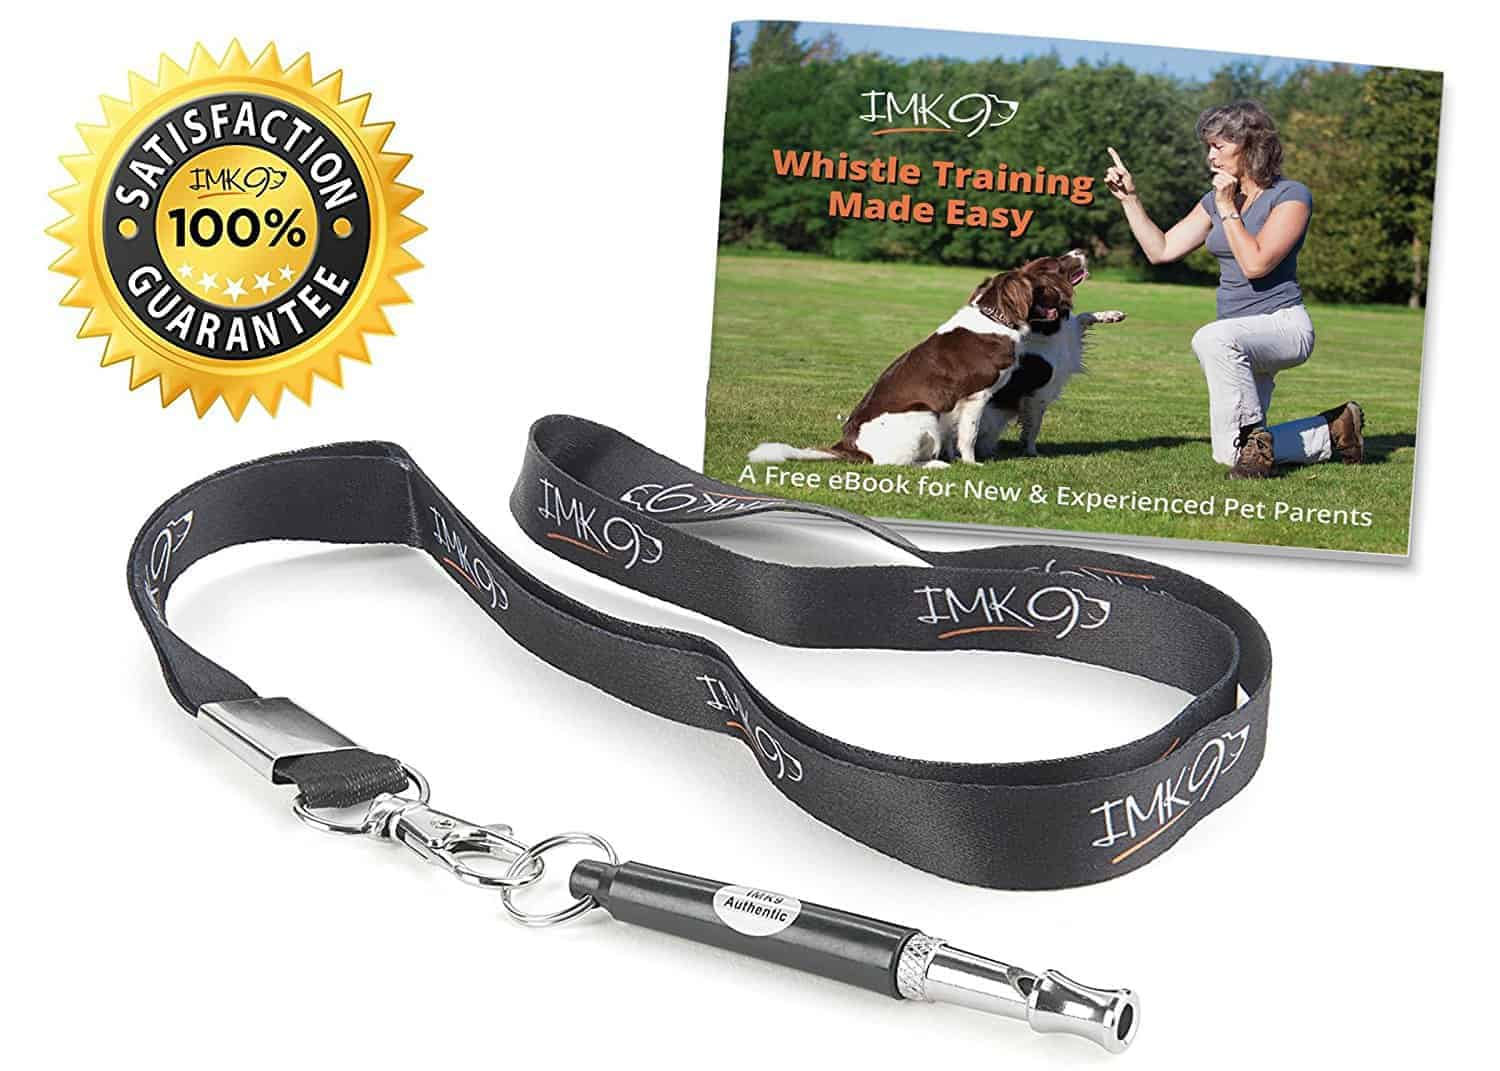 Best Dog Whistle to Stop Barking – IMK9 Pets